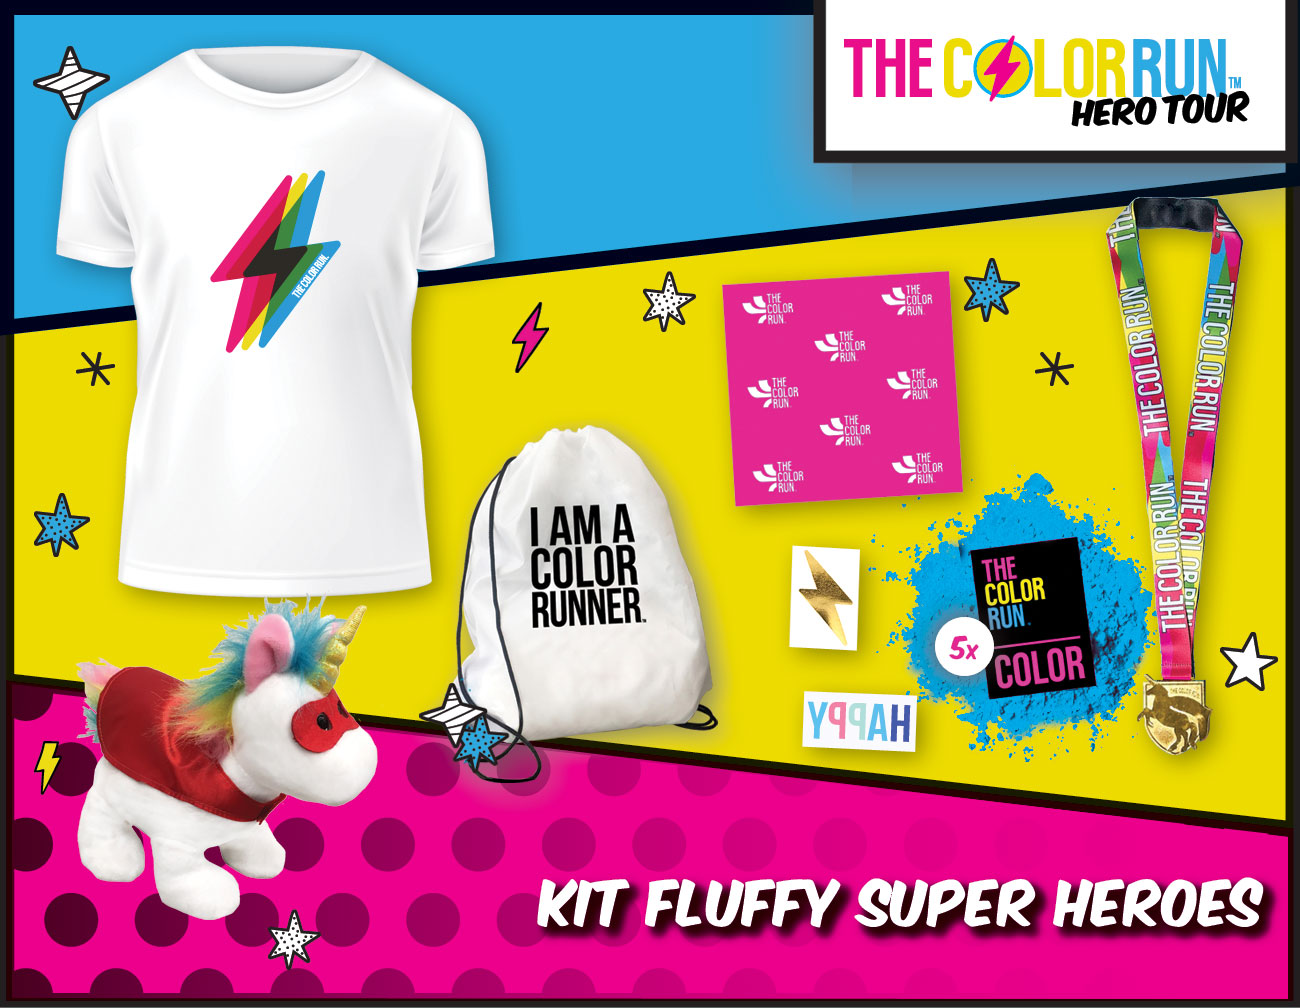 kid fluffy Super heroes Participant Kit